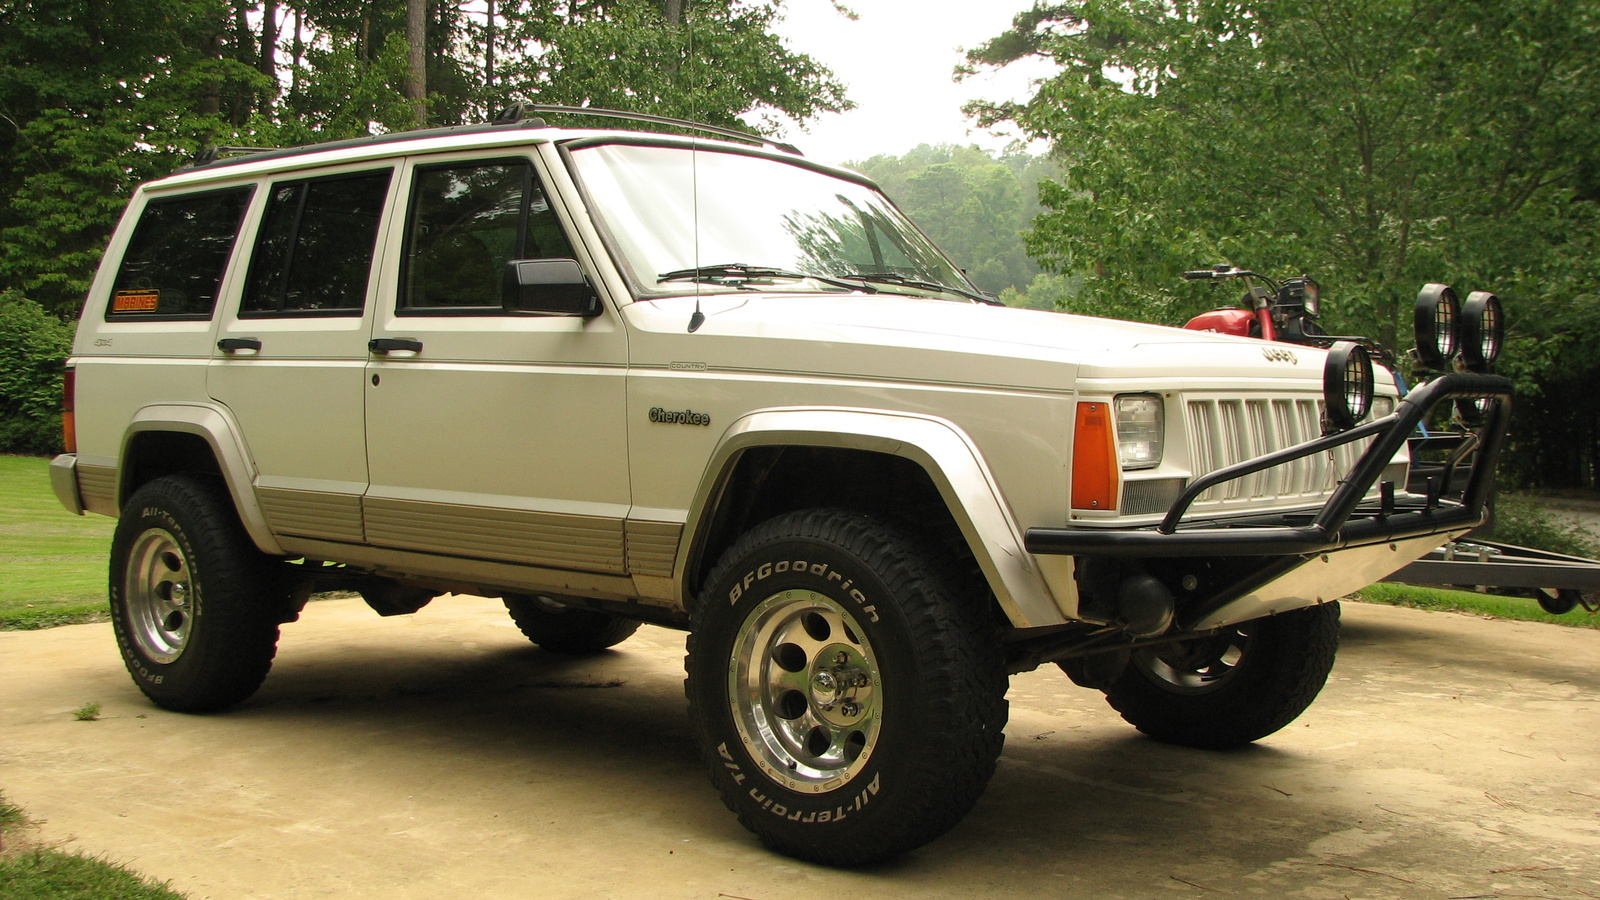 1996 Jeep Cherokee 4 Dr Country 4WD SUV picture